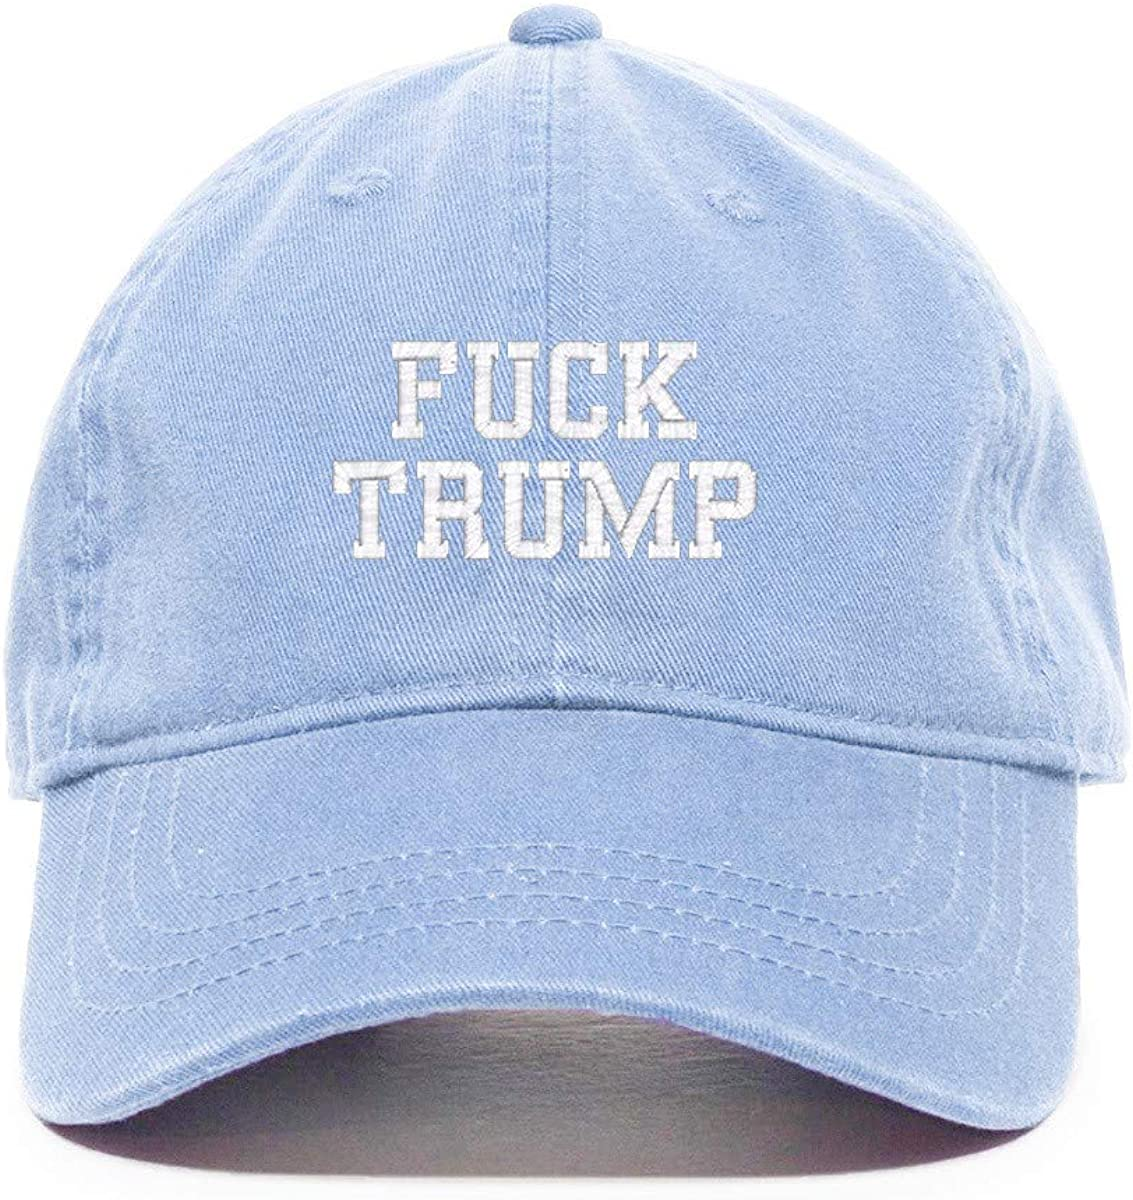 DSGN By DNA Fuck Trump MAGA Baseball Cap Embroidered Cotton Adjustable Dad Hat